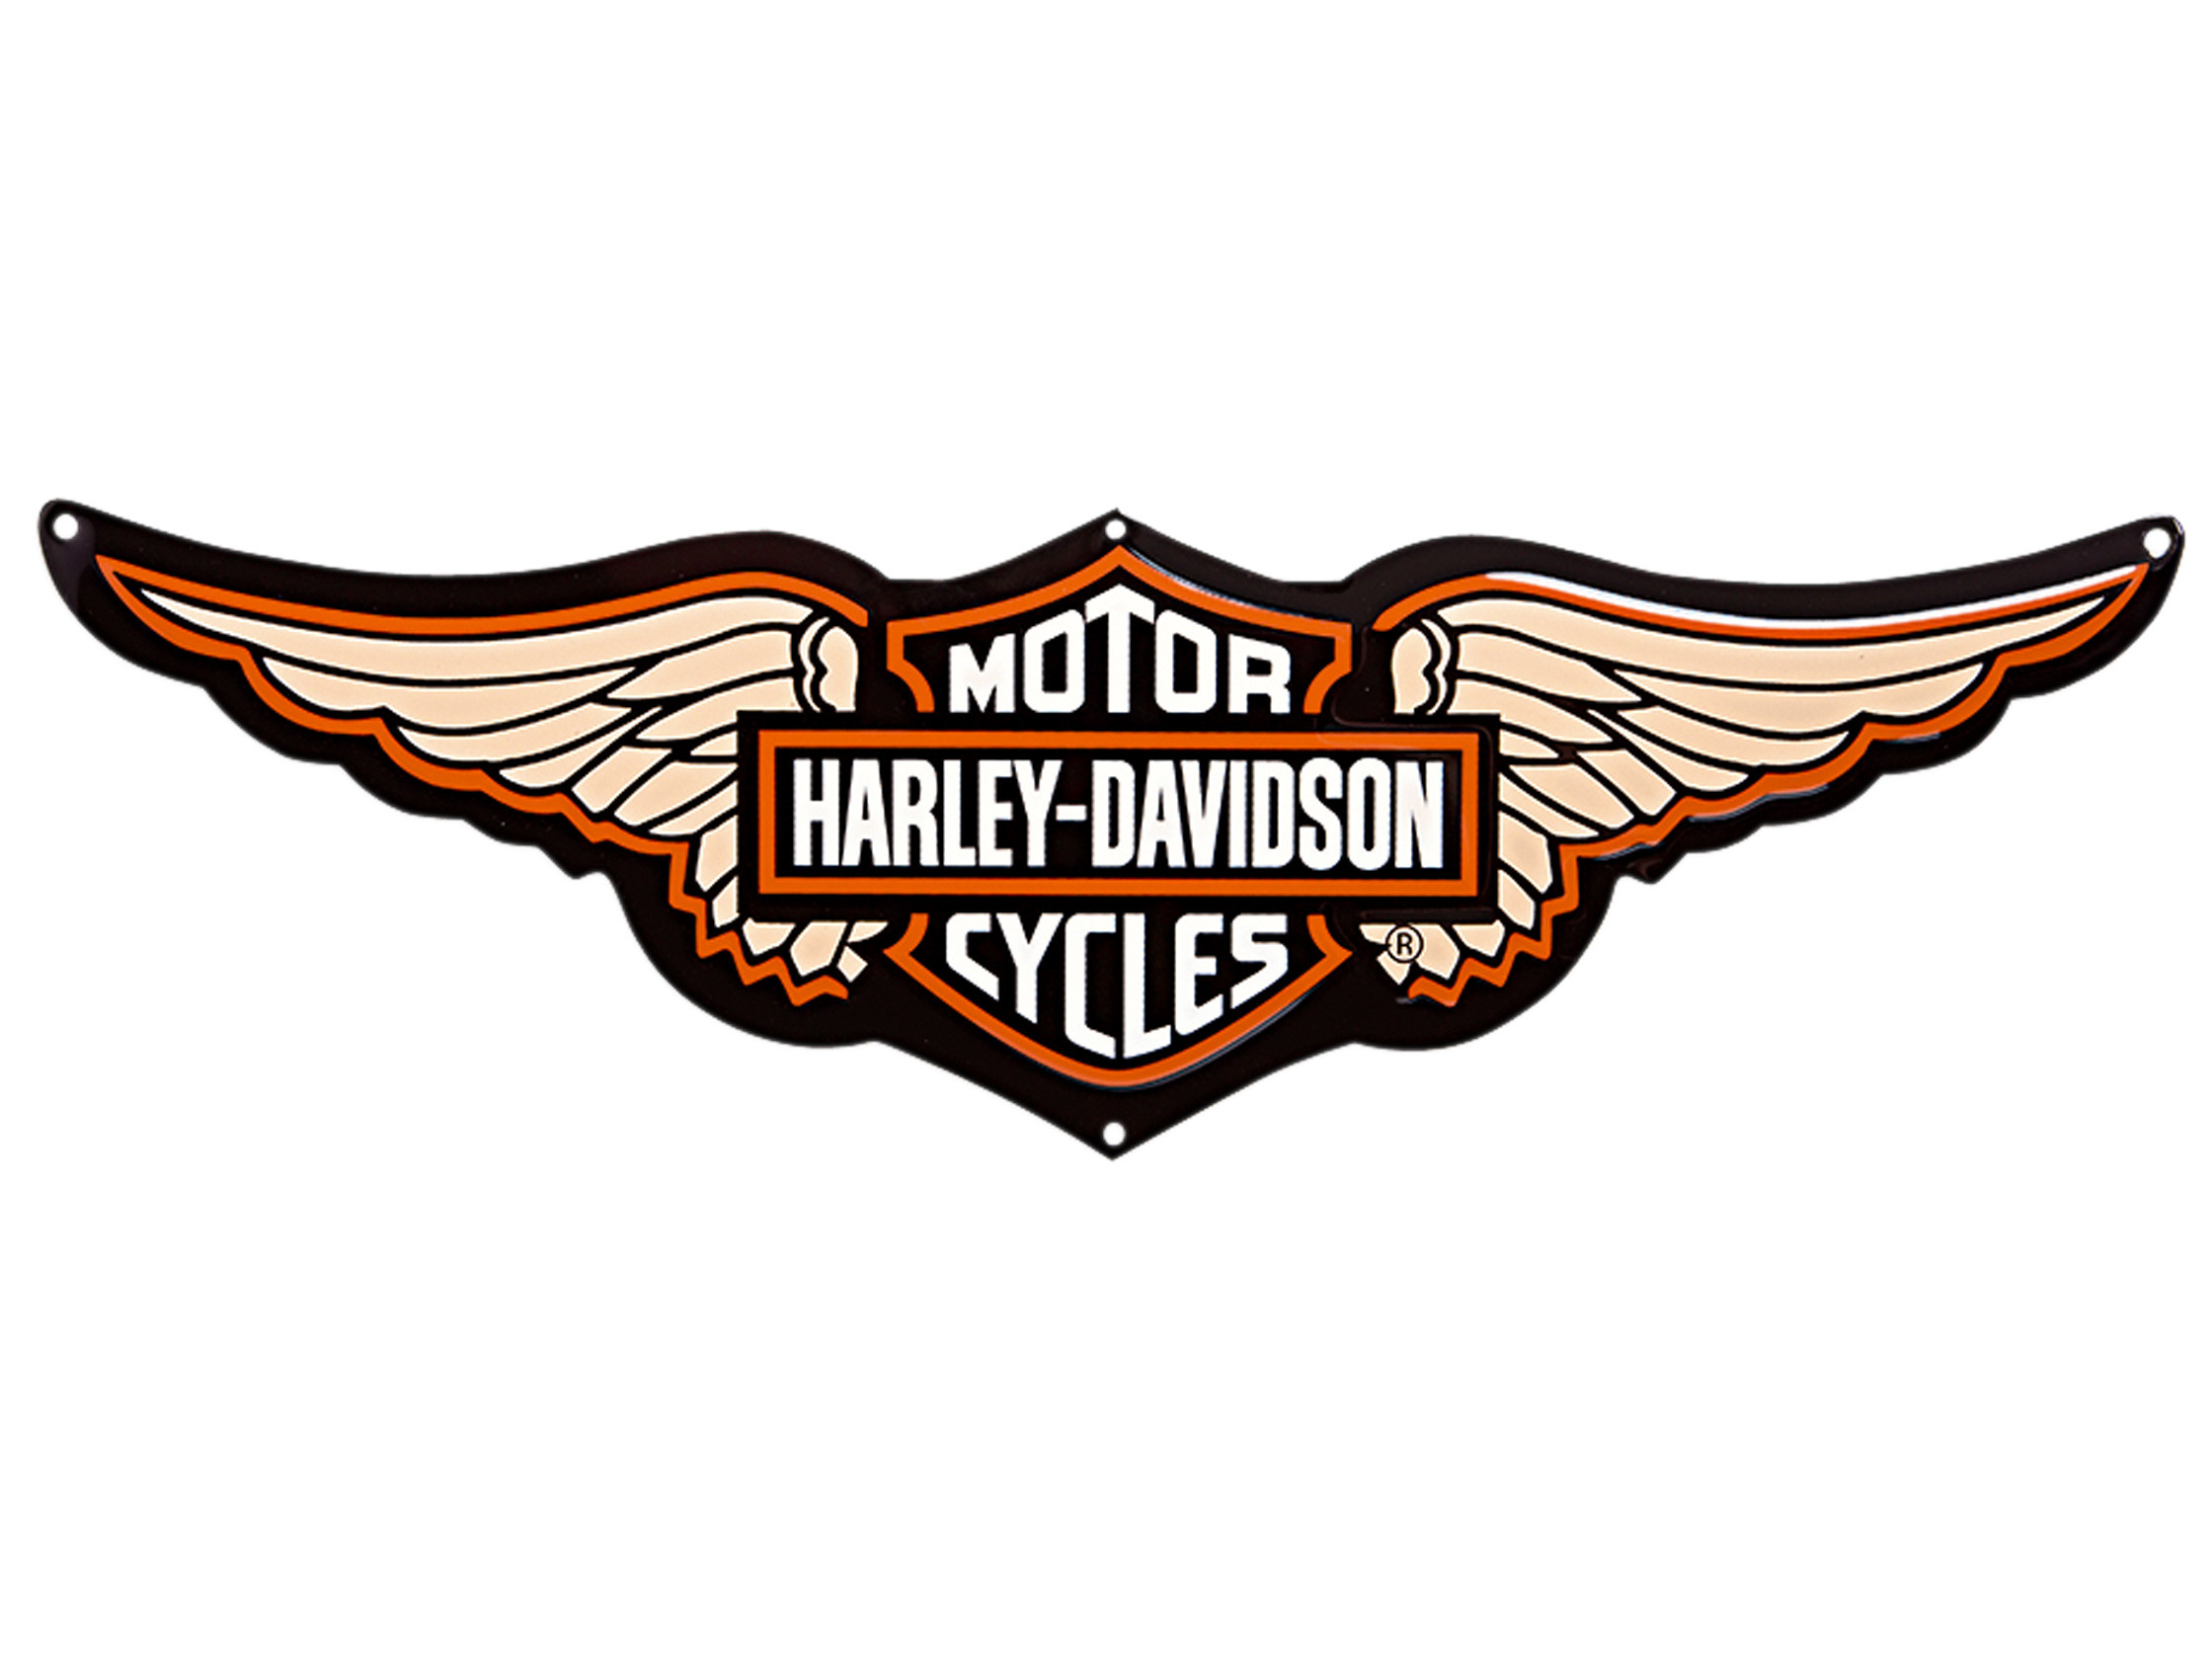 harley davidson logo wallpapers 74 background pictures rh pavbca com harley davidson logo wallpaper free harley davidson logo wallpaper free